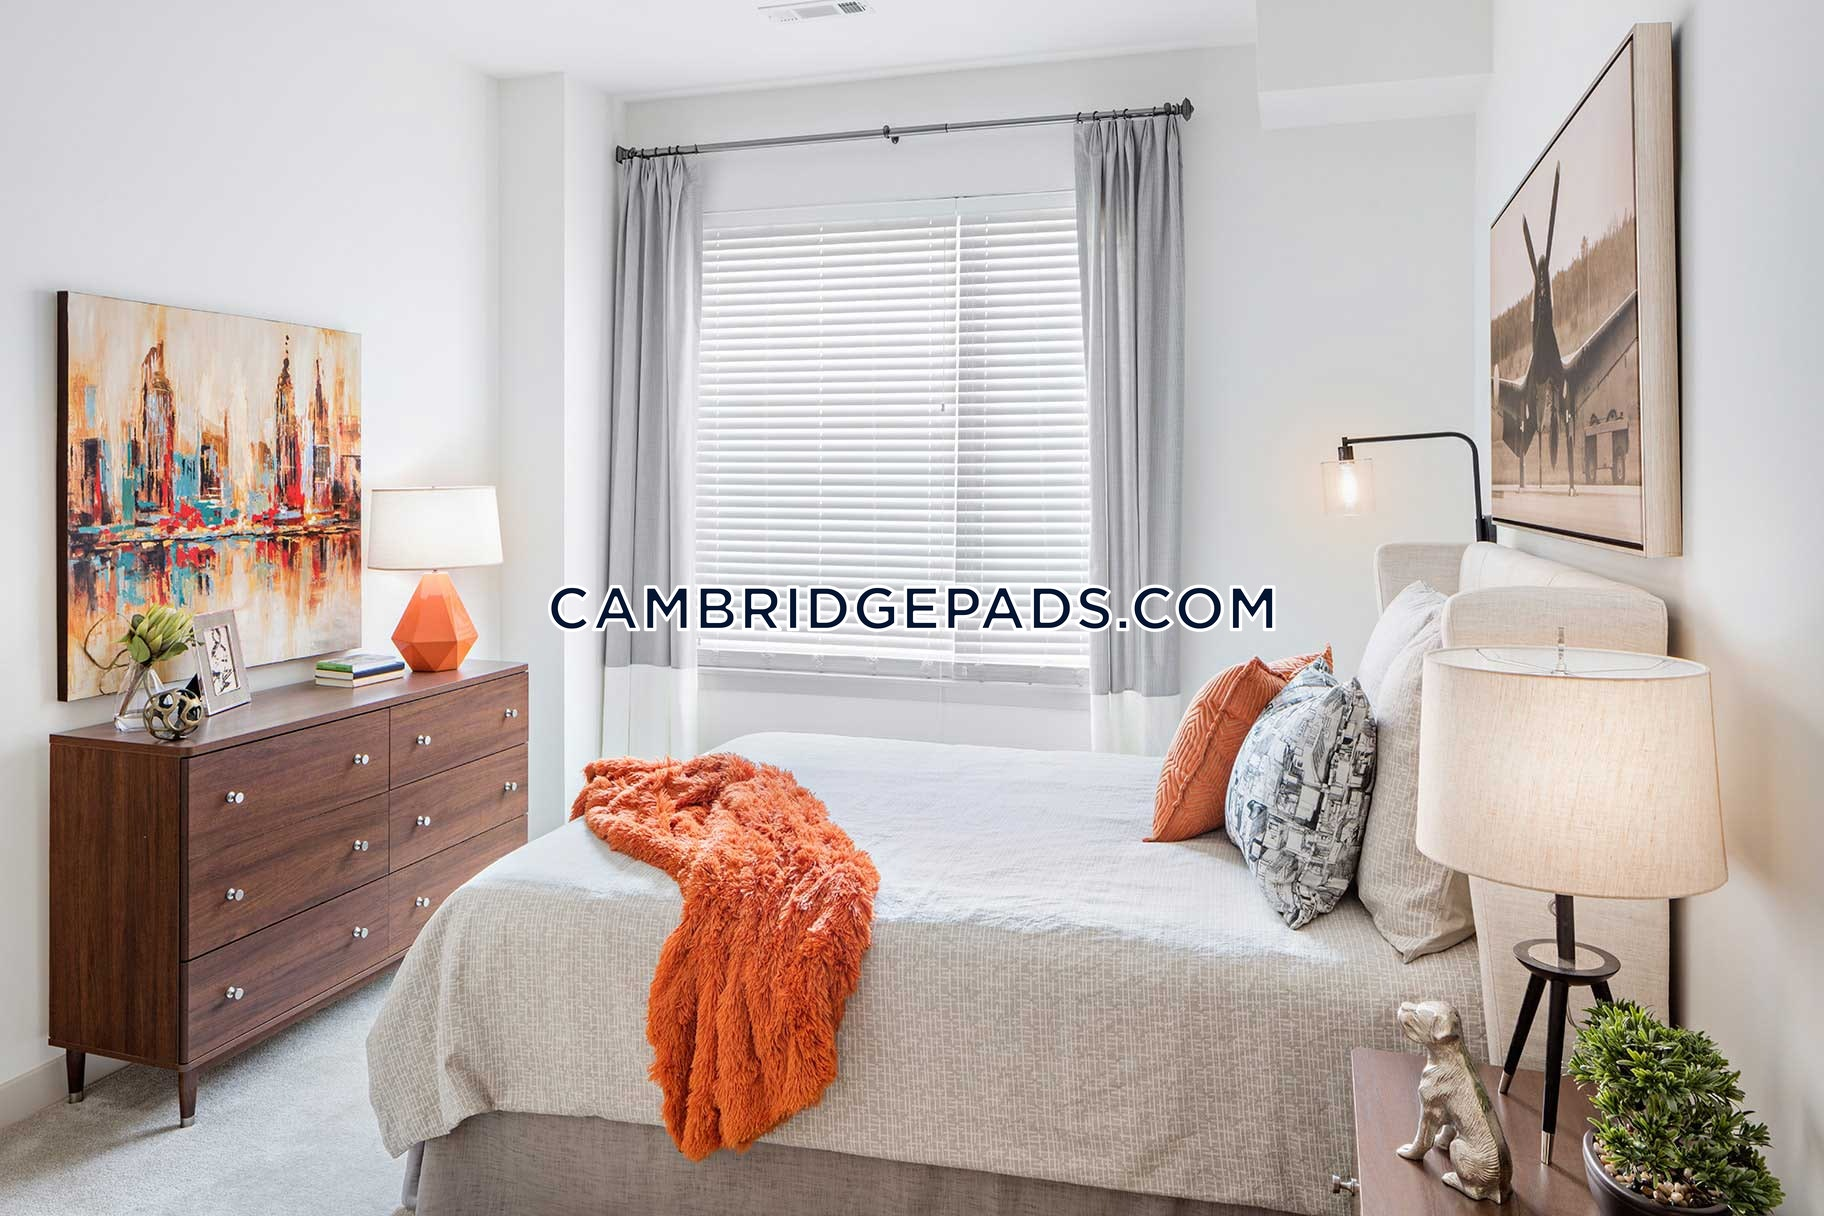 Cambridge - $3,169